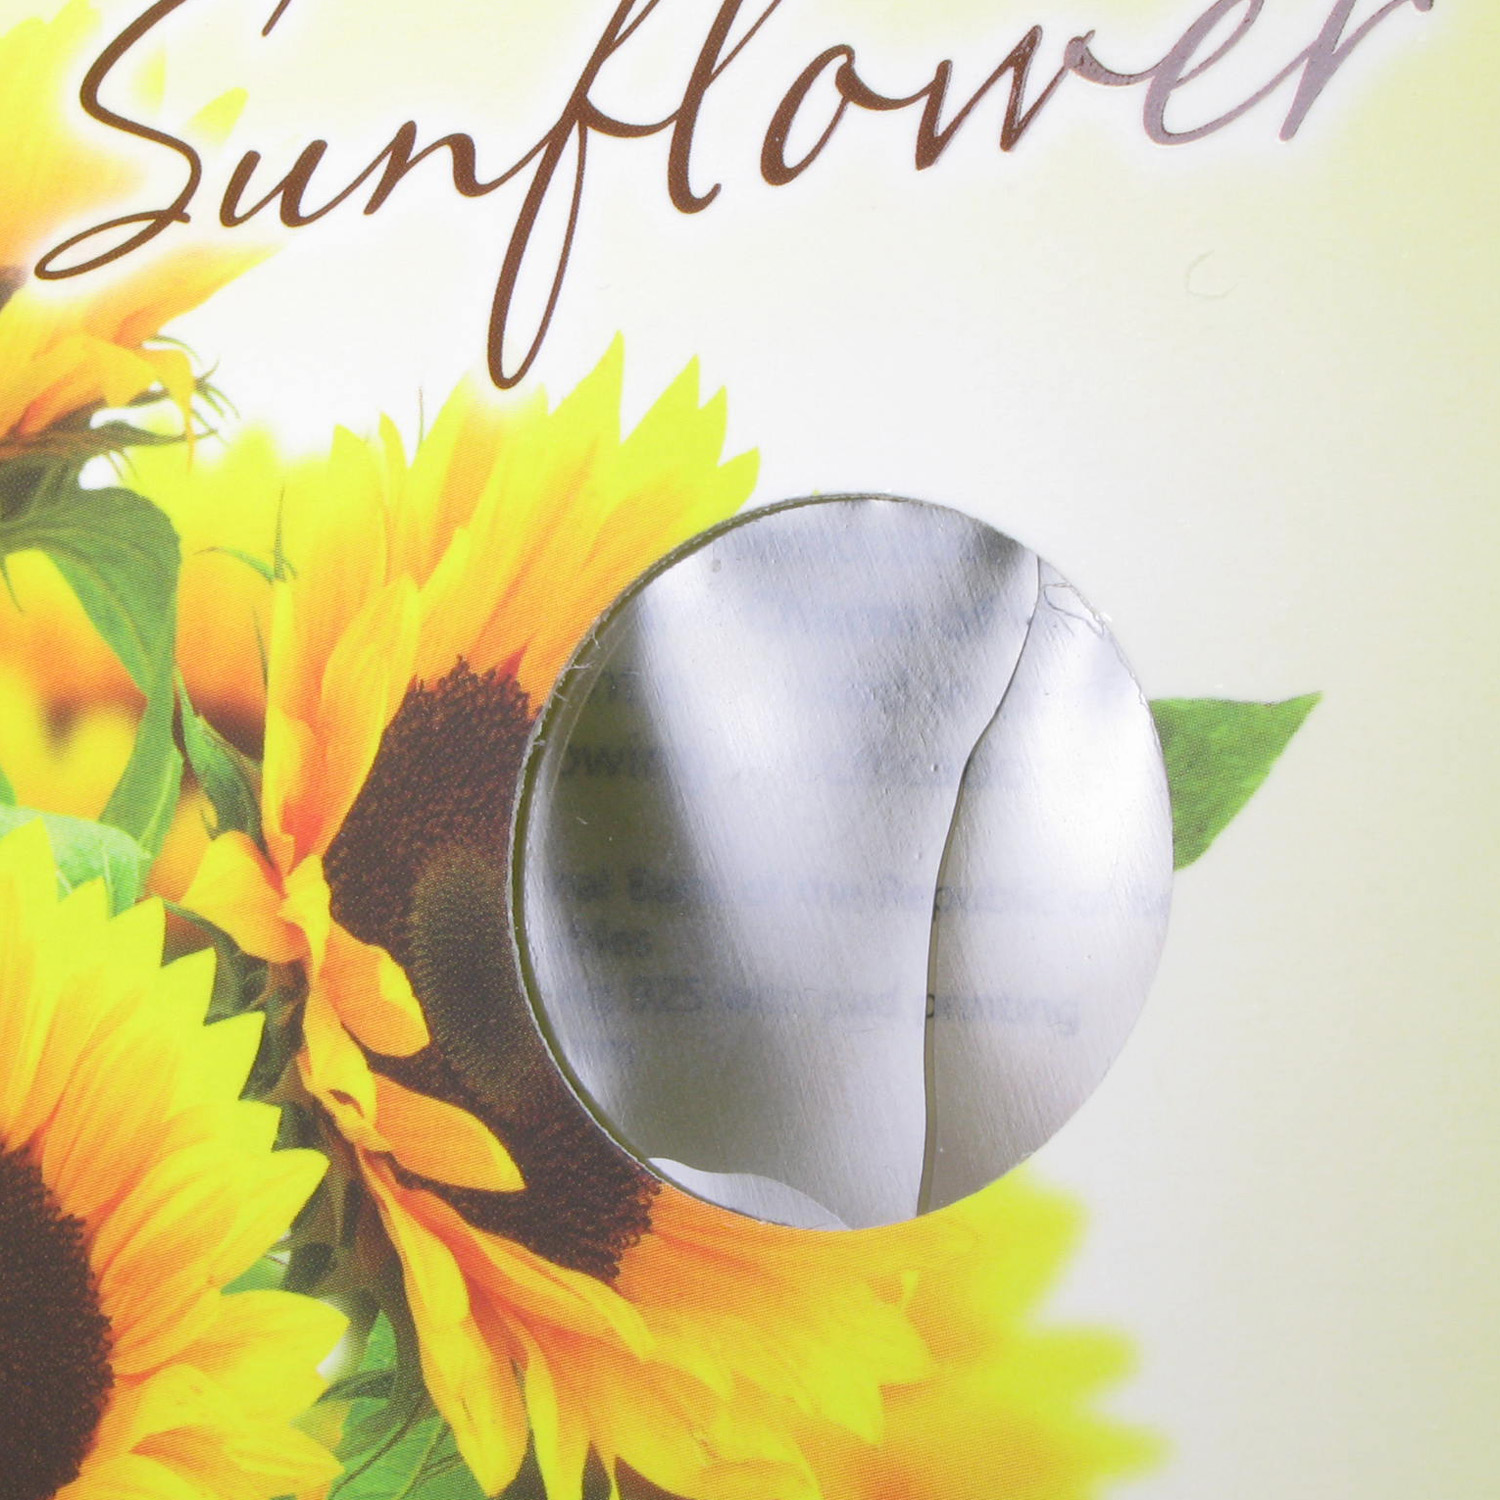 Belarus 2013 Under the Charm of Flowers Sunflower (damaged box)